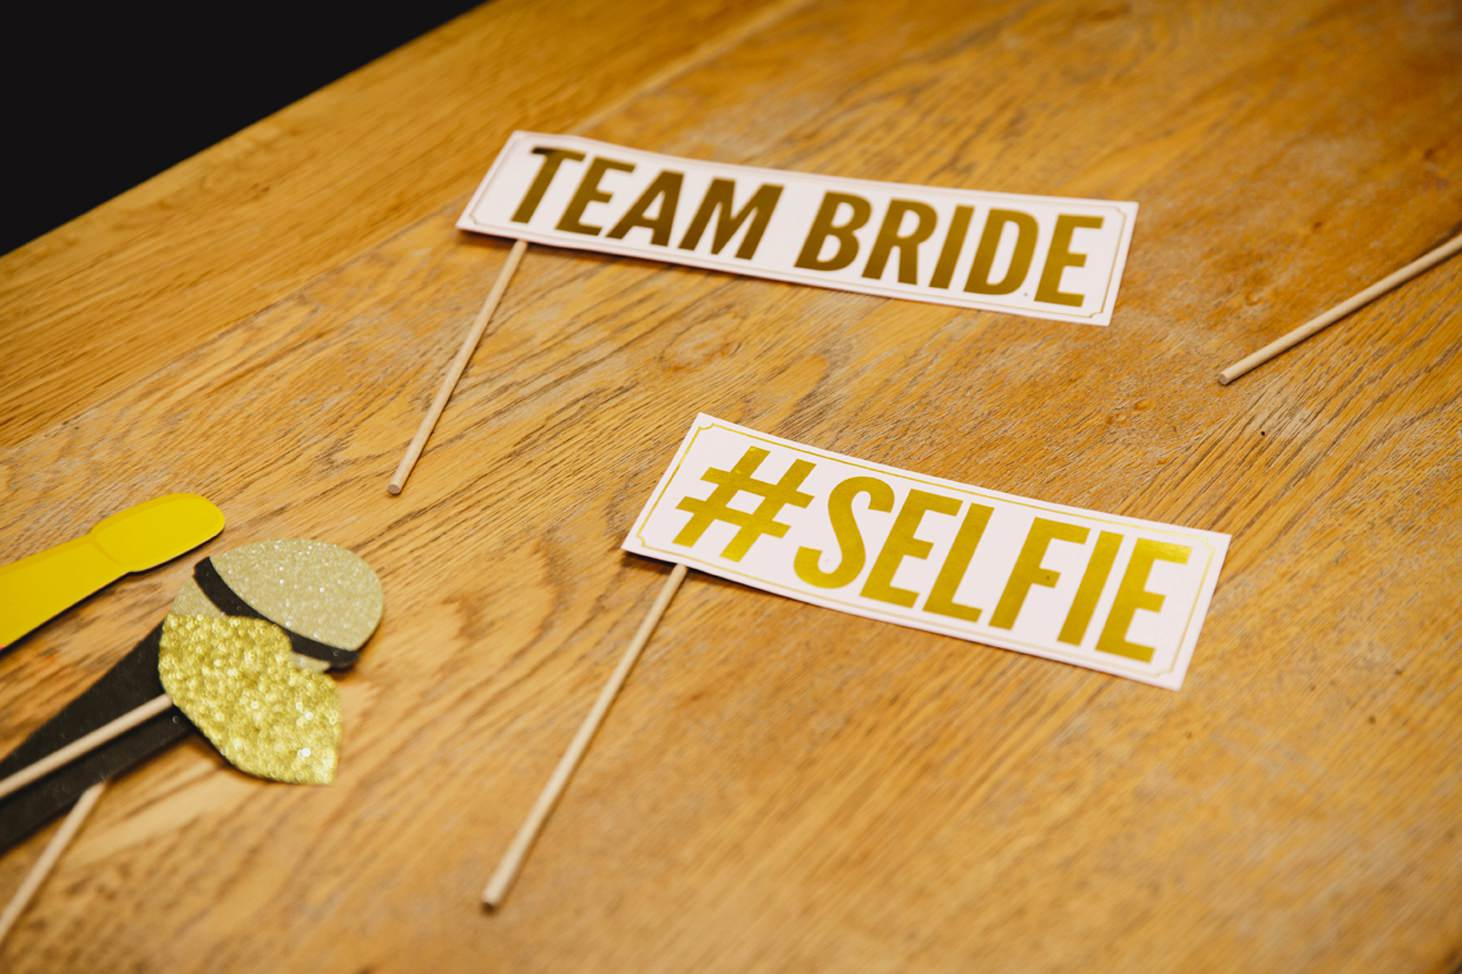 caswell house wedding photography Photo Booth props